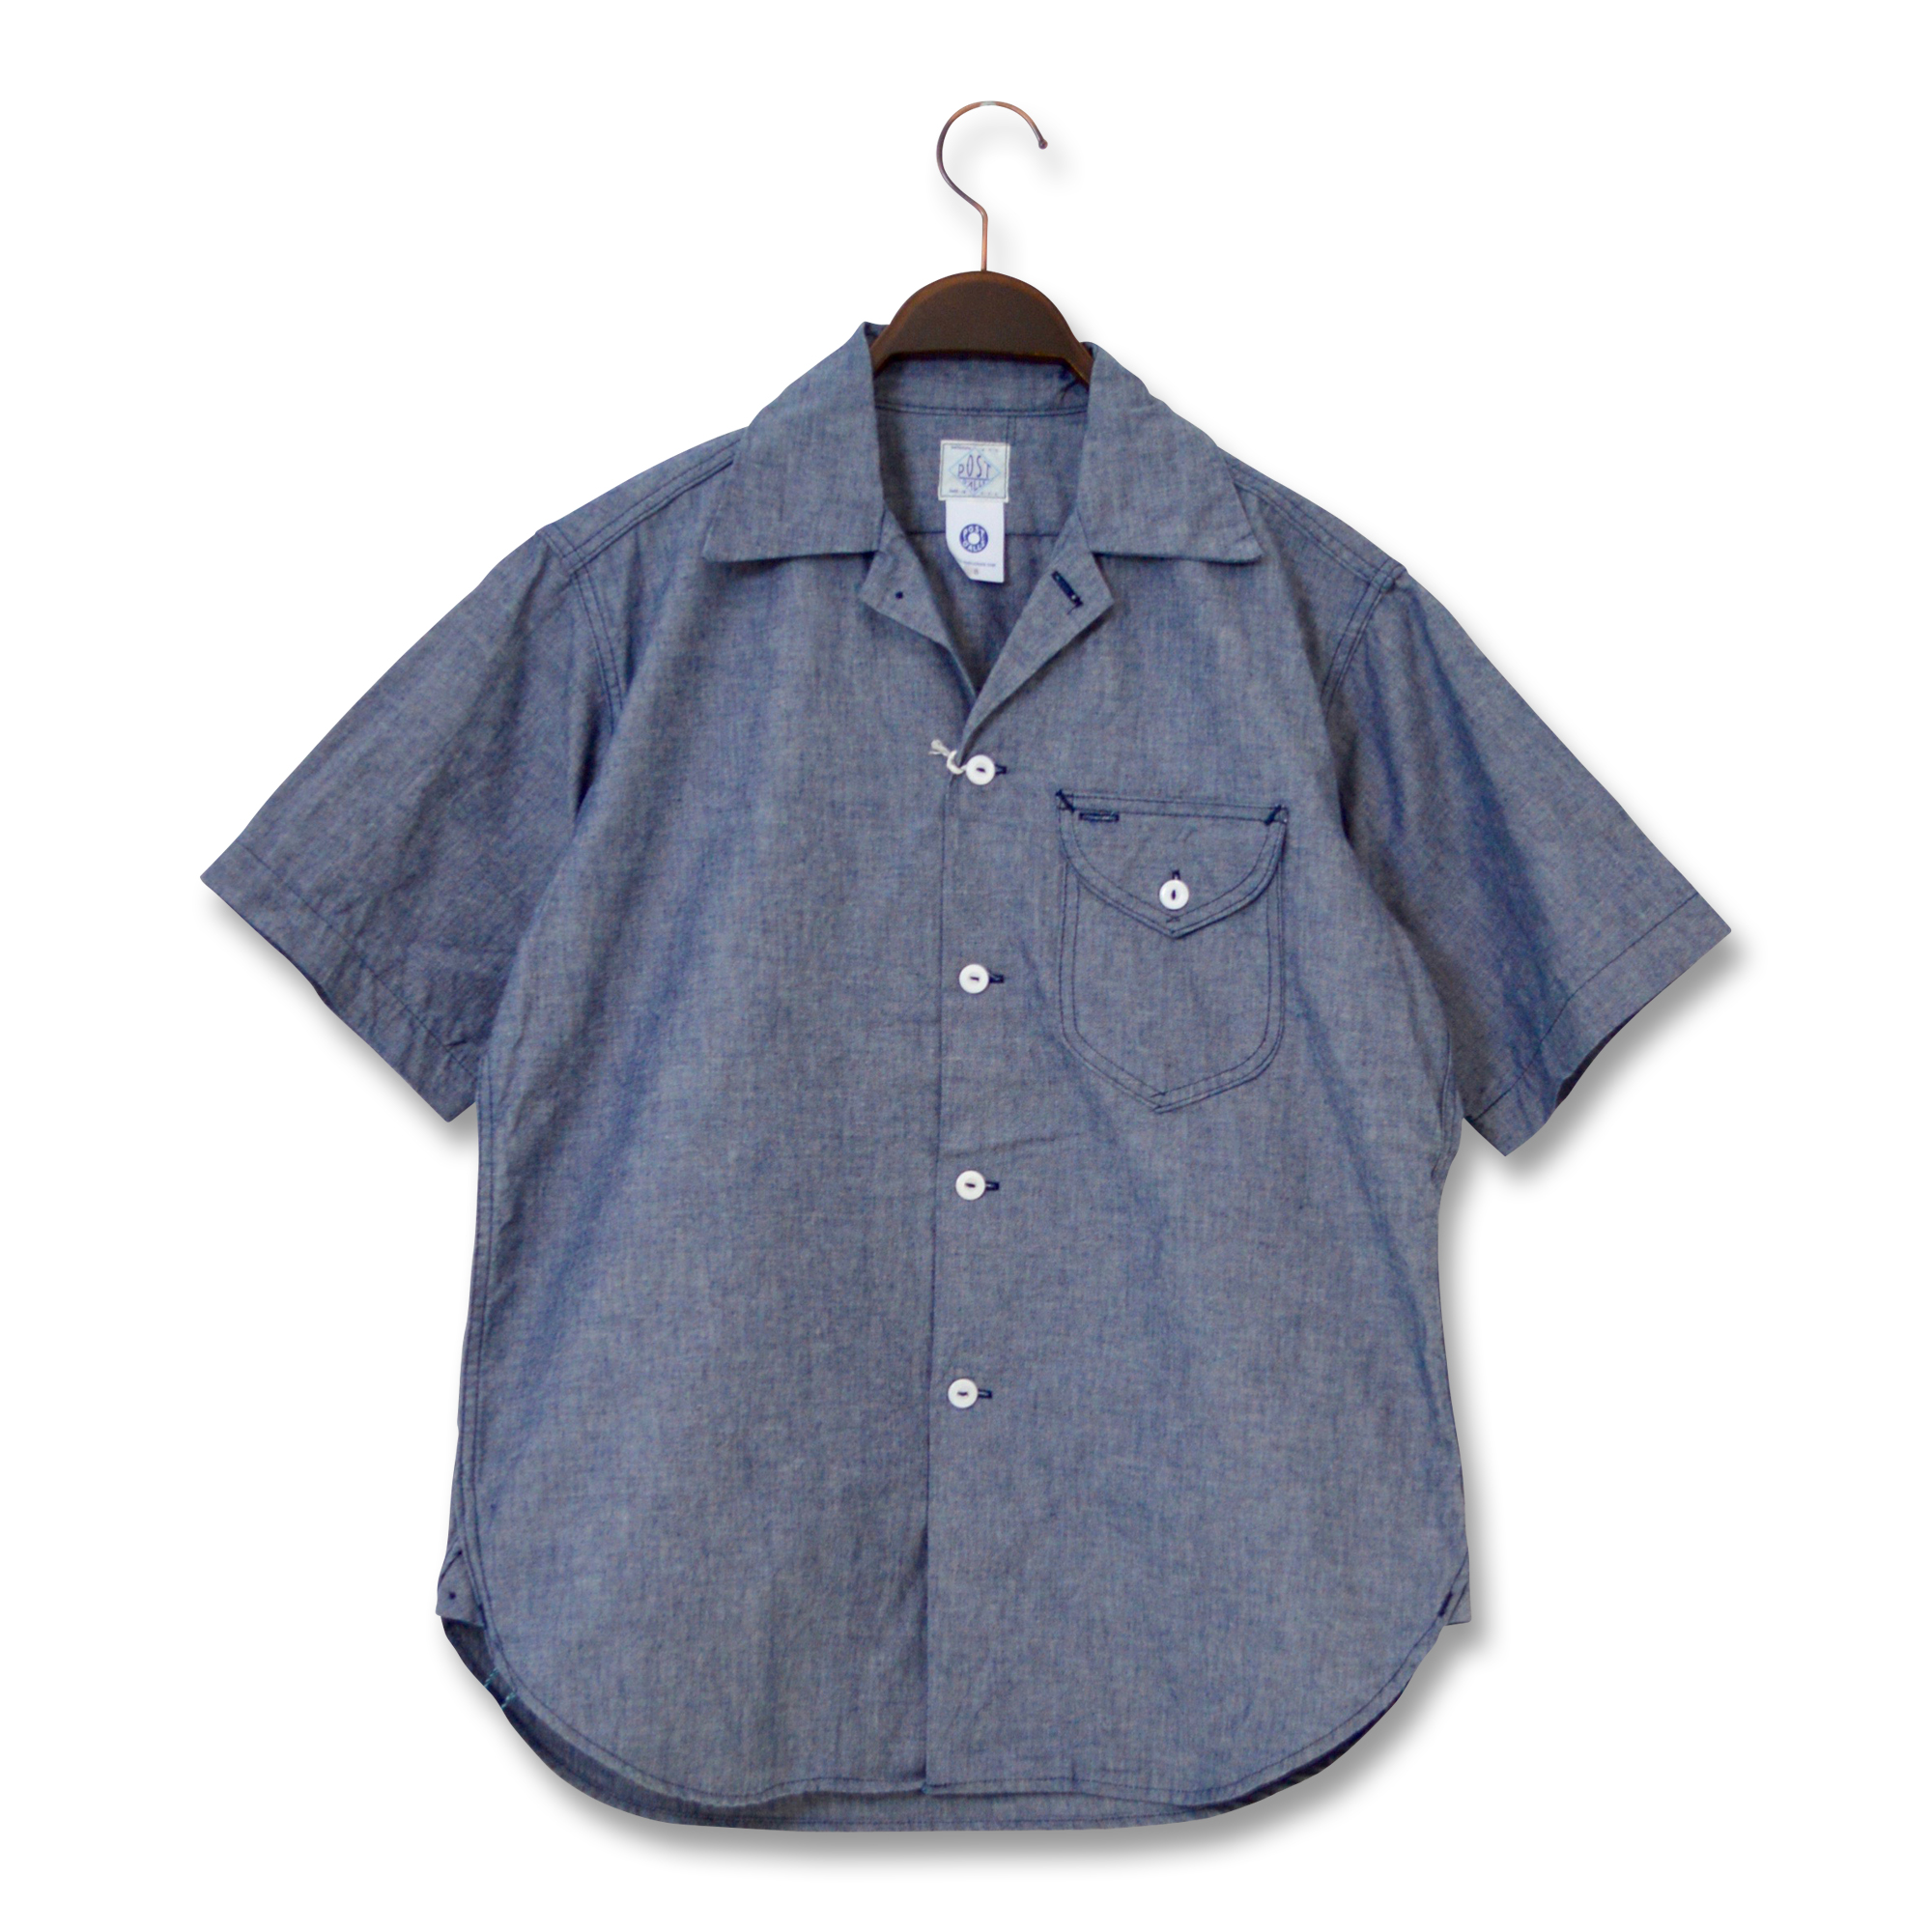 POST OVERALLS(ポストオーバーオールズ)/1269S E-Z CRUZ 5 S/S SHIRT/CONE CHAMBRAY